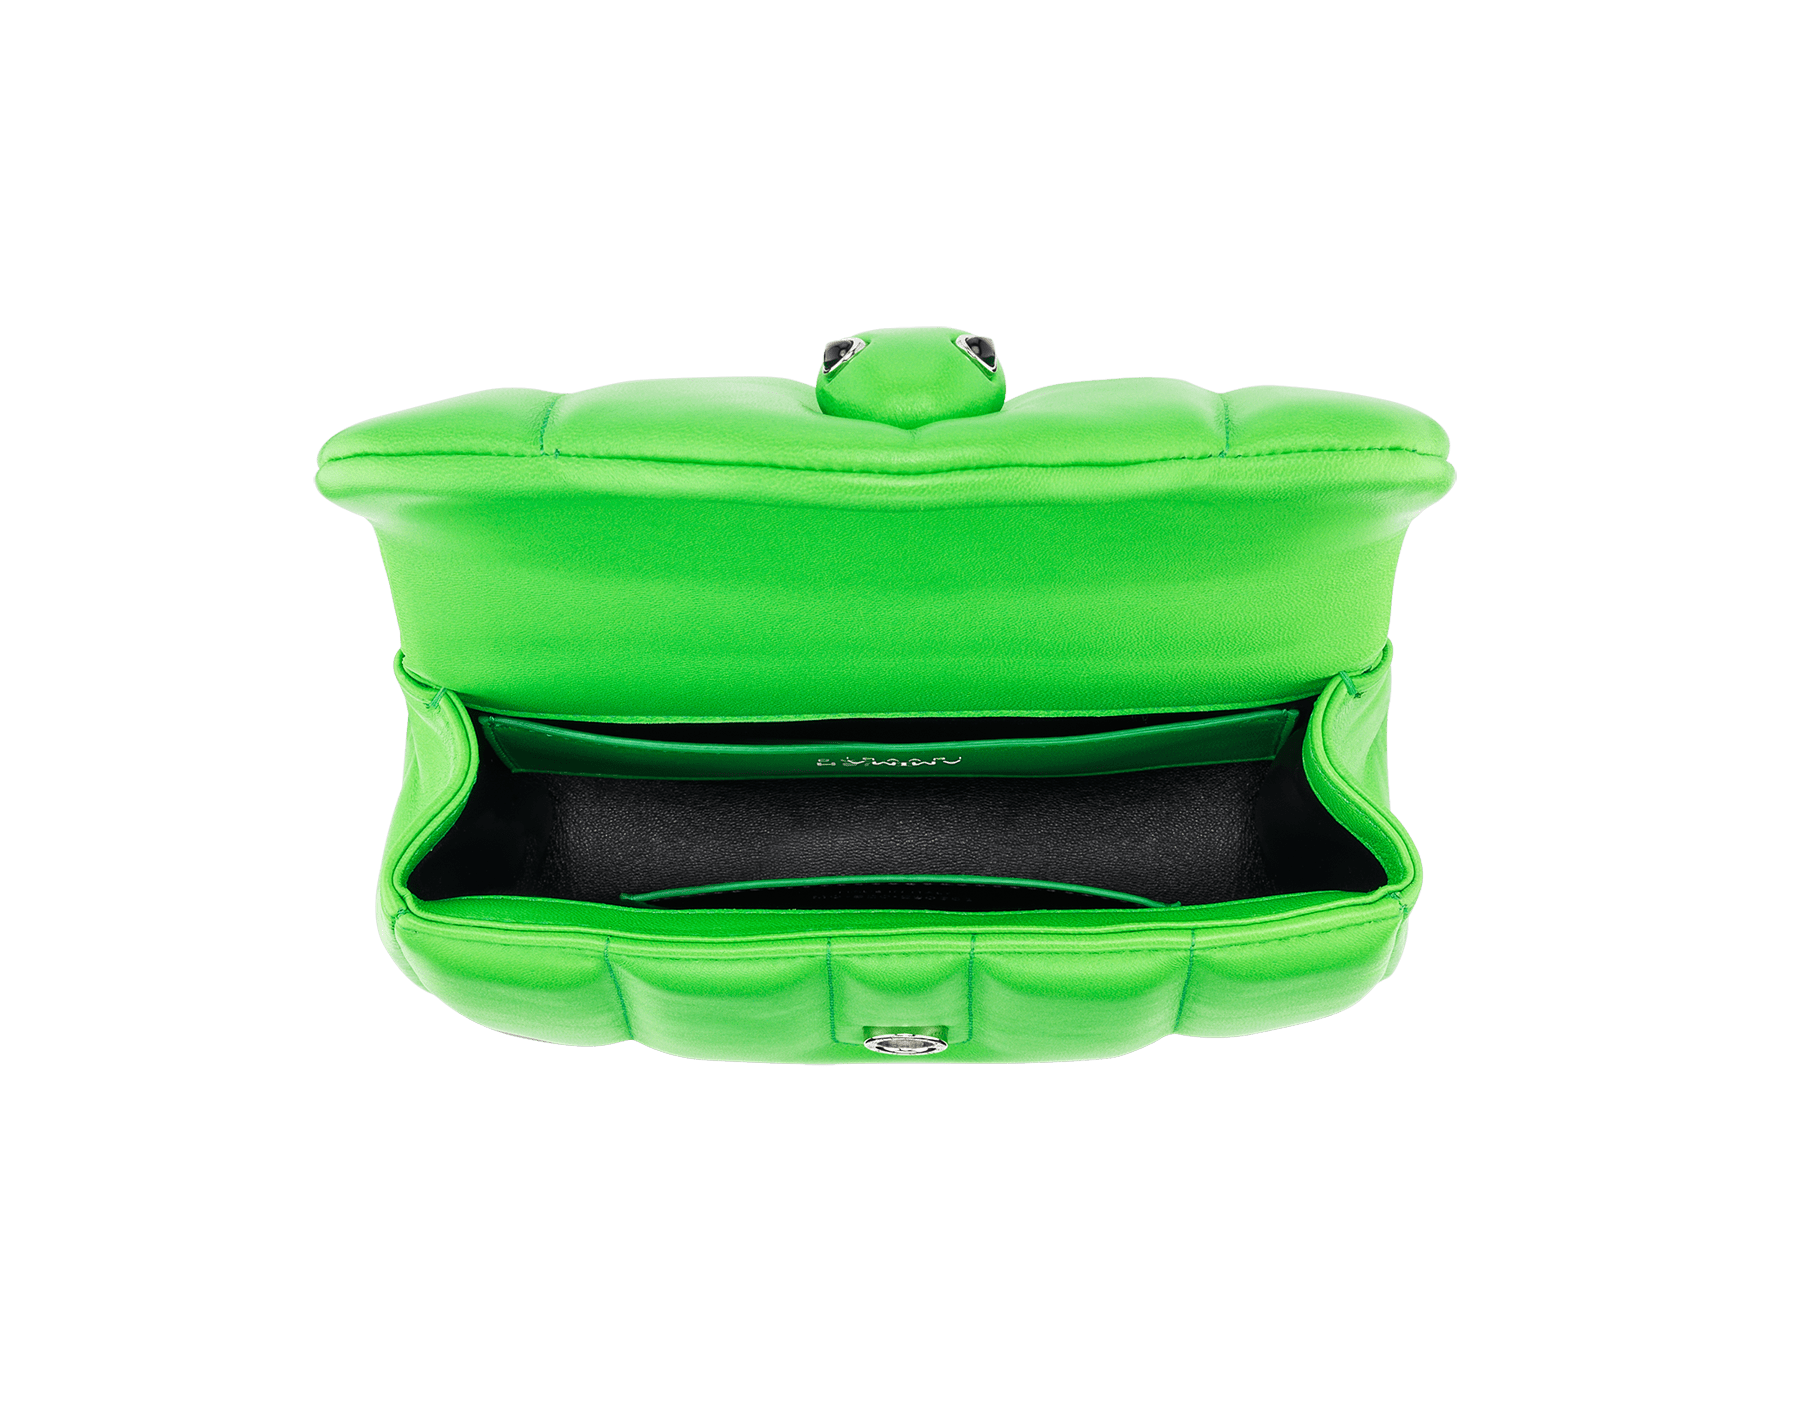 """Ambush x Bvlgari"" belt bag in bright green nappa leather. New Serpenti head closure in palladium plated brass dressed with bright green nappa leather, finished with seductive black onyx eyes. Limited edition. YA-1059 image 4"